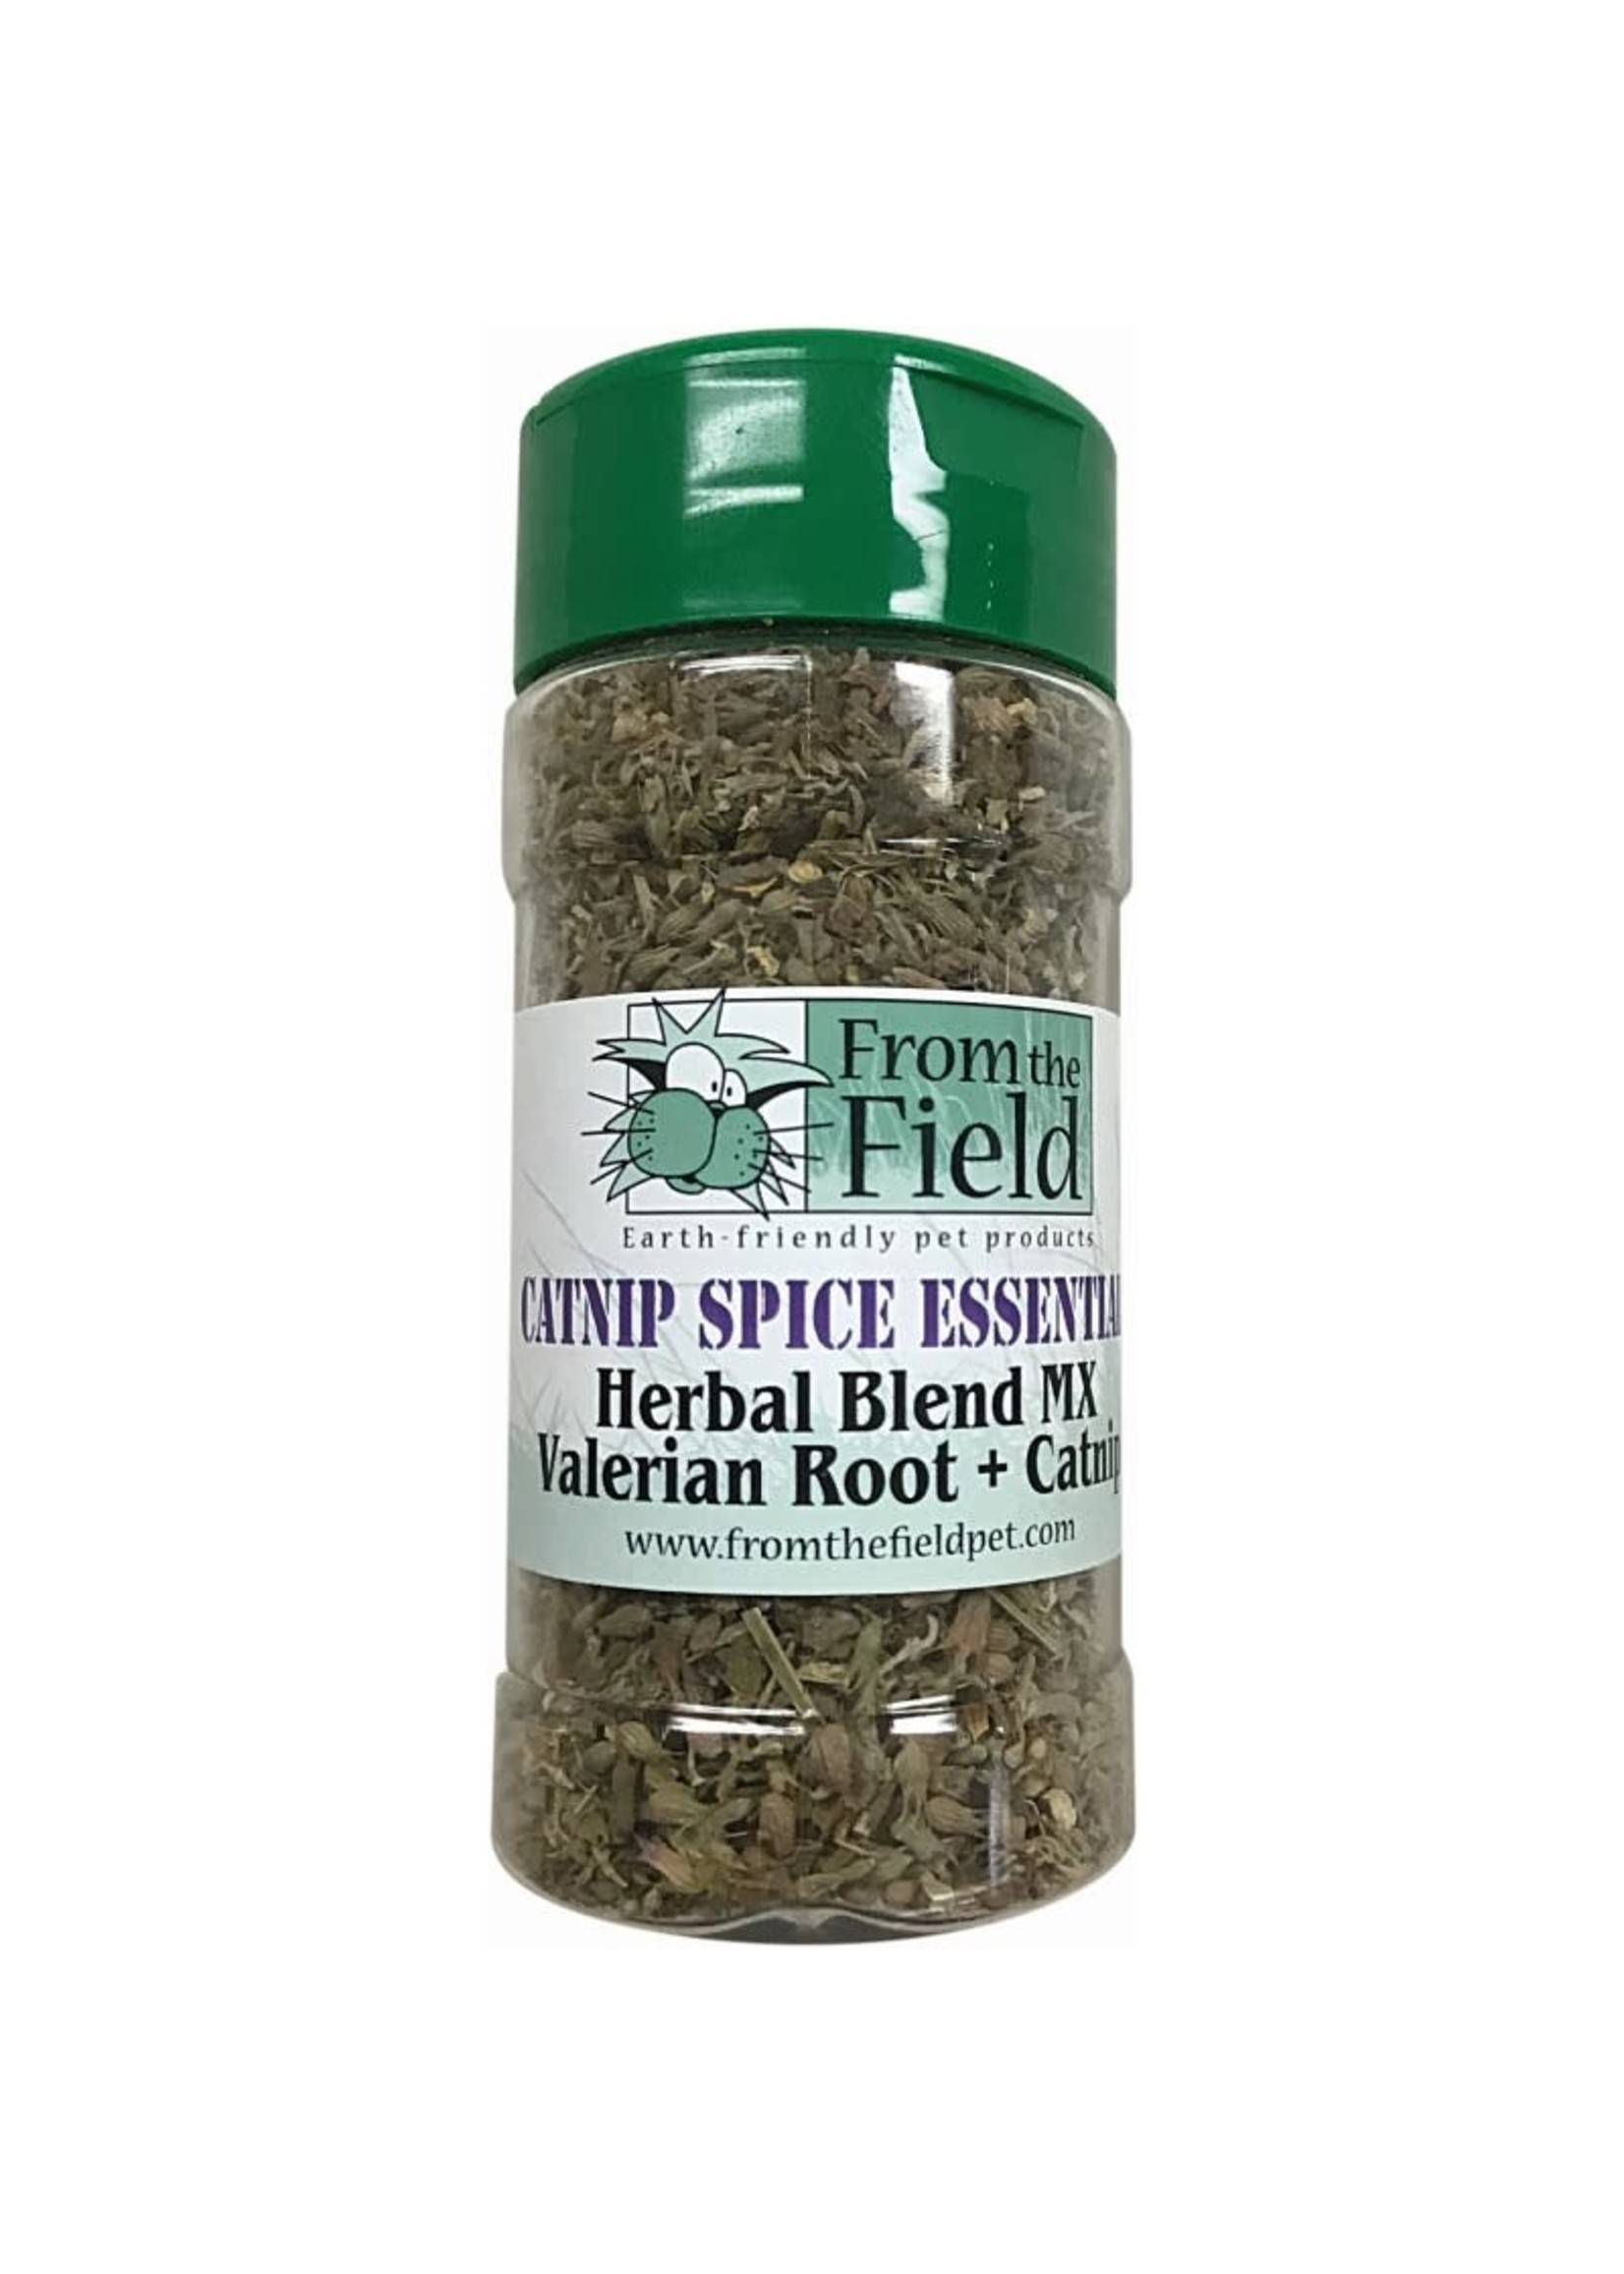 From The Field From the Field Spice Herbal Blend Valerian